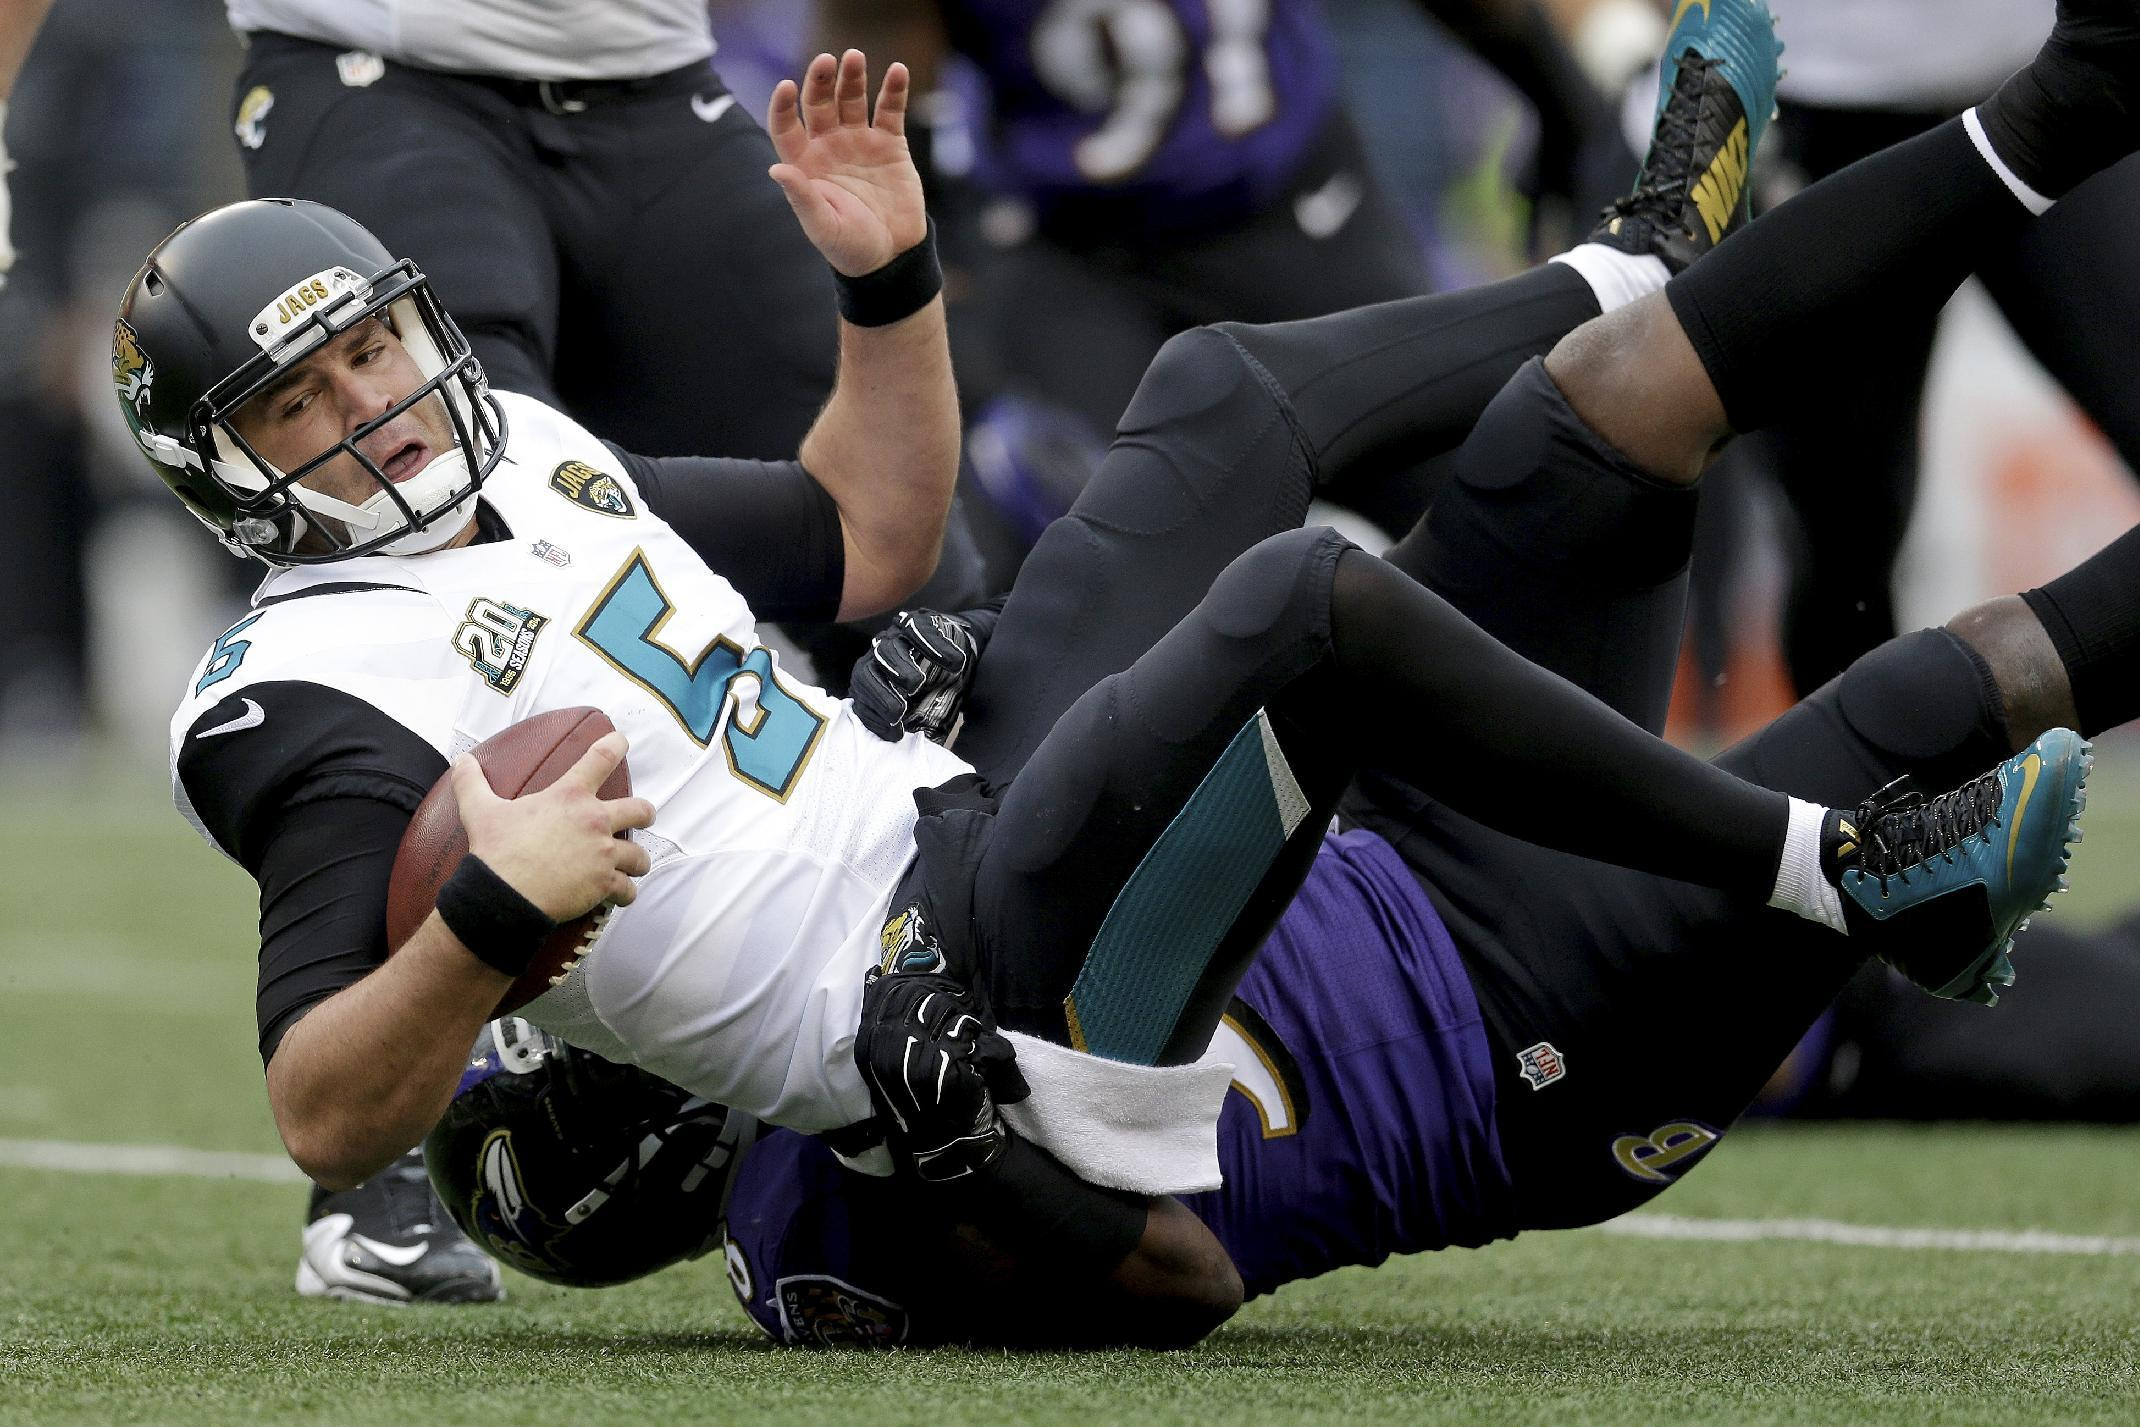 Jaguars fan cracks conspiracy that's kept team down for 20 years